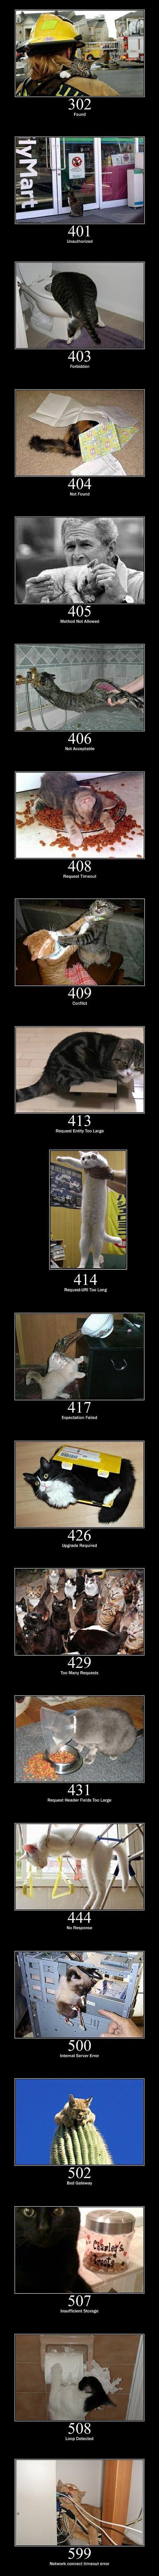 20 Cats As Error Messages.  Basically, how cats take over the internet… which was inevitable, I suppose.